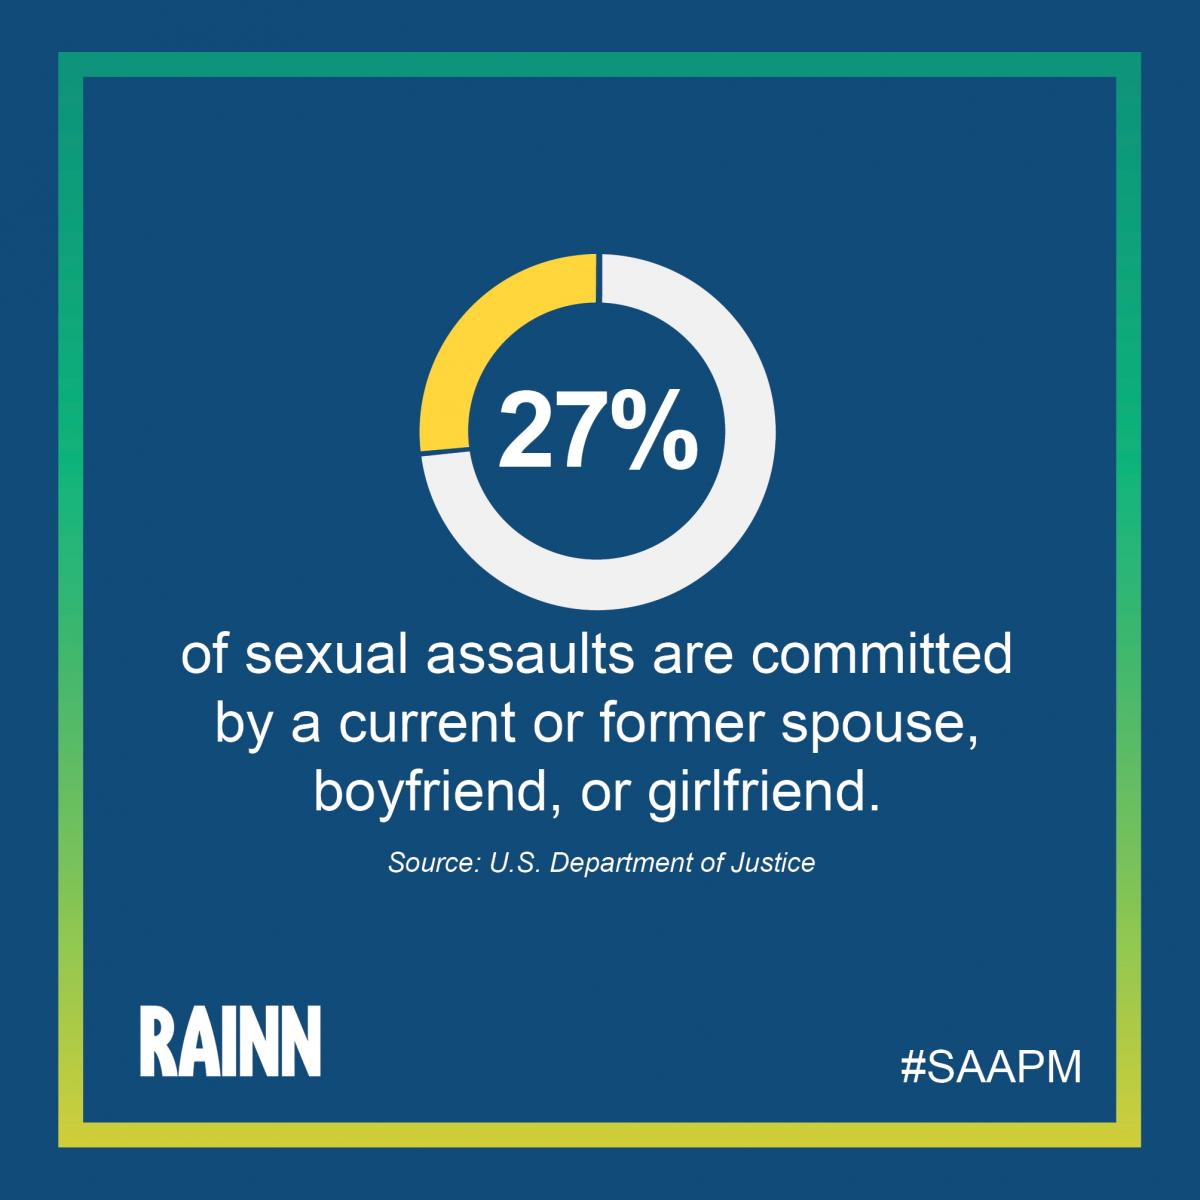 Instagram-ready graphic stating: 27% of sexual assaults are committed by a former spouse, boyfriend, or girlfriend